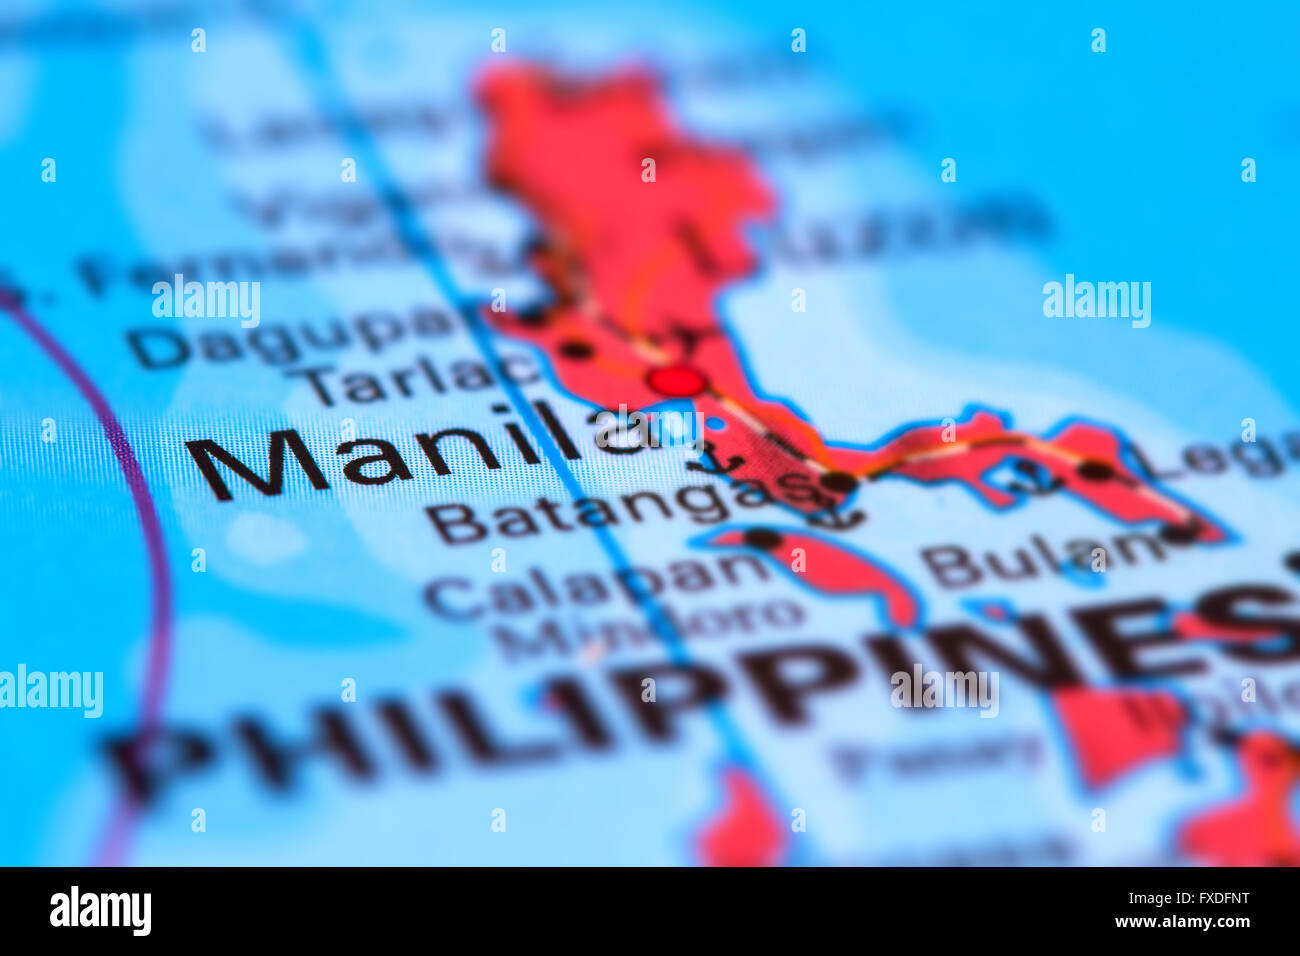 Manila Philippines World Map.Manila Capital City Of The Philippines On The World Map Stock Photo